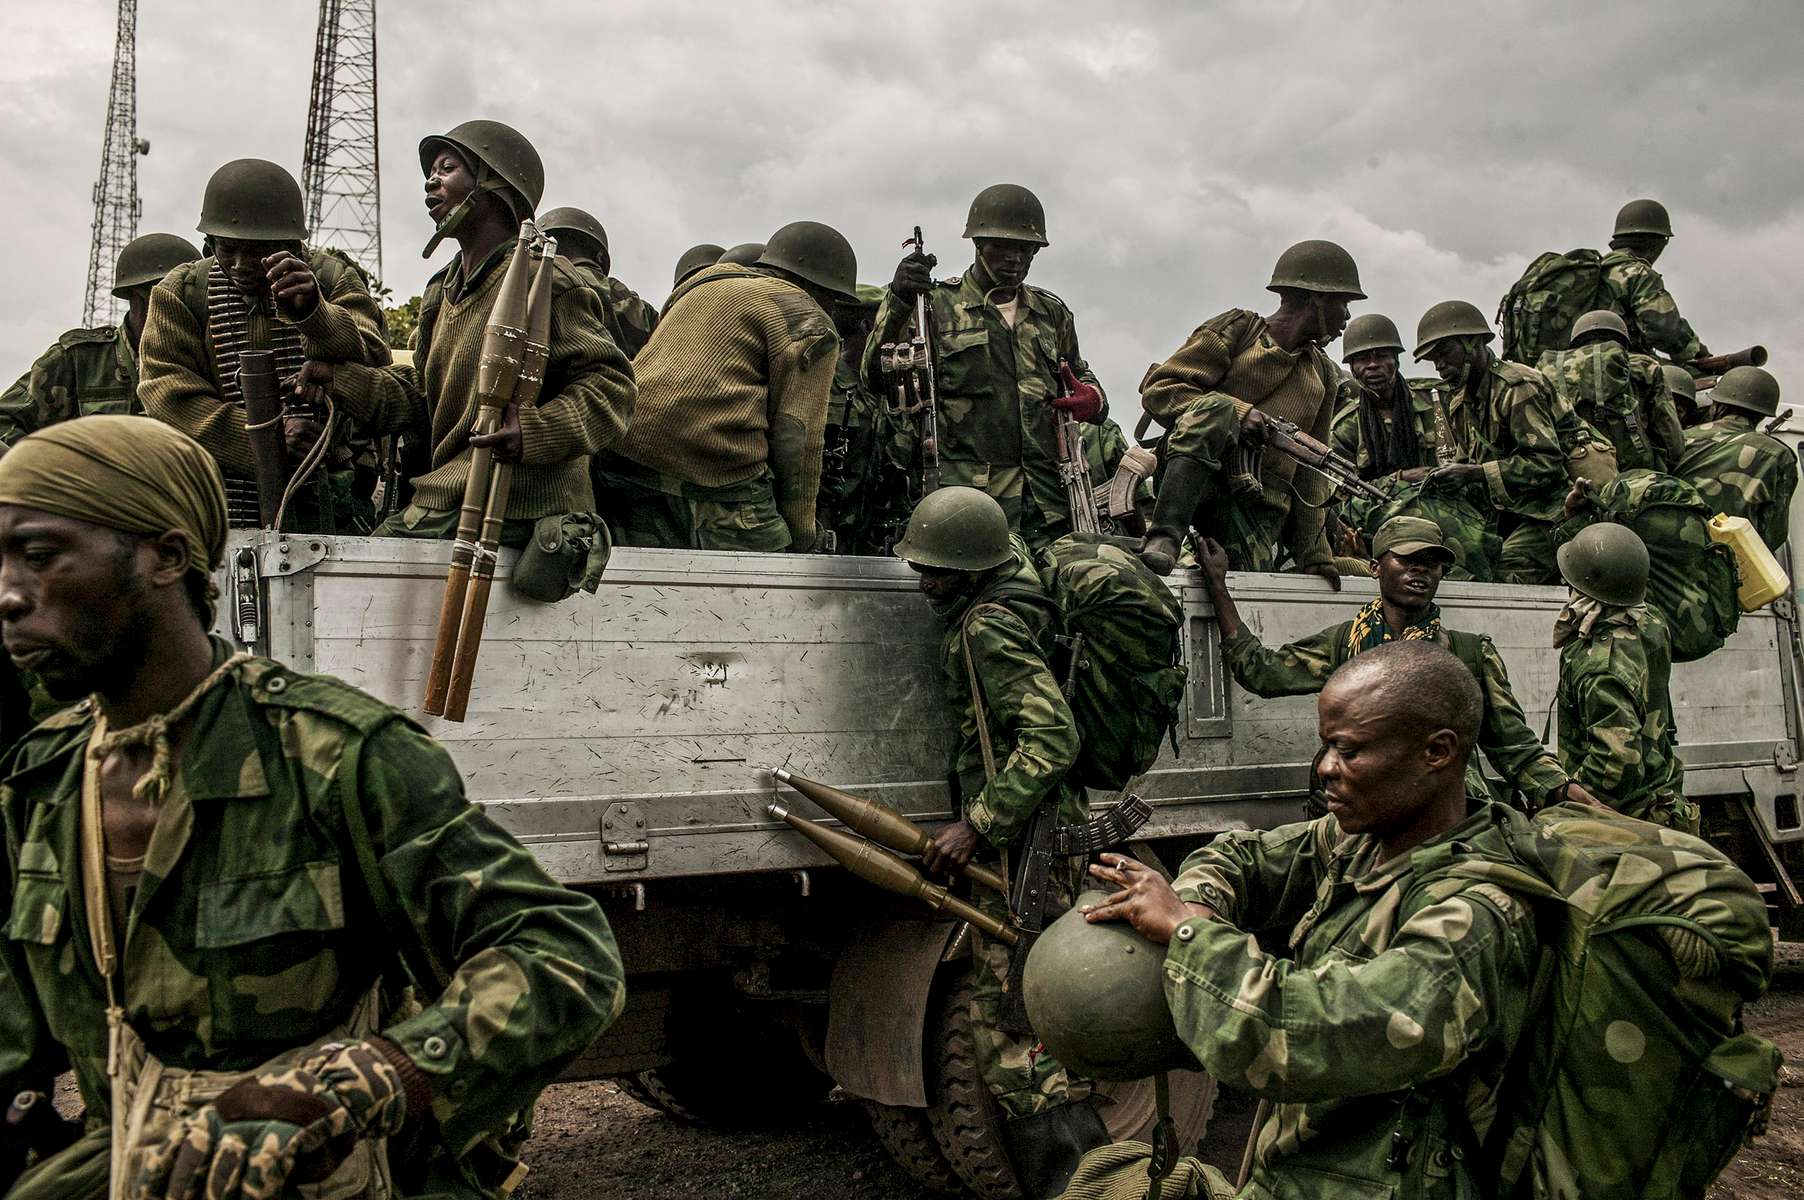 Congolese forces arrive for a large scale offensive against M23 rebels who are dug in in the hills around Kibumba, north of Goma.